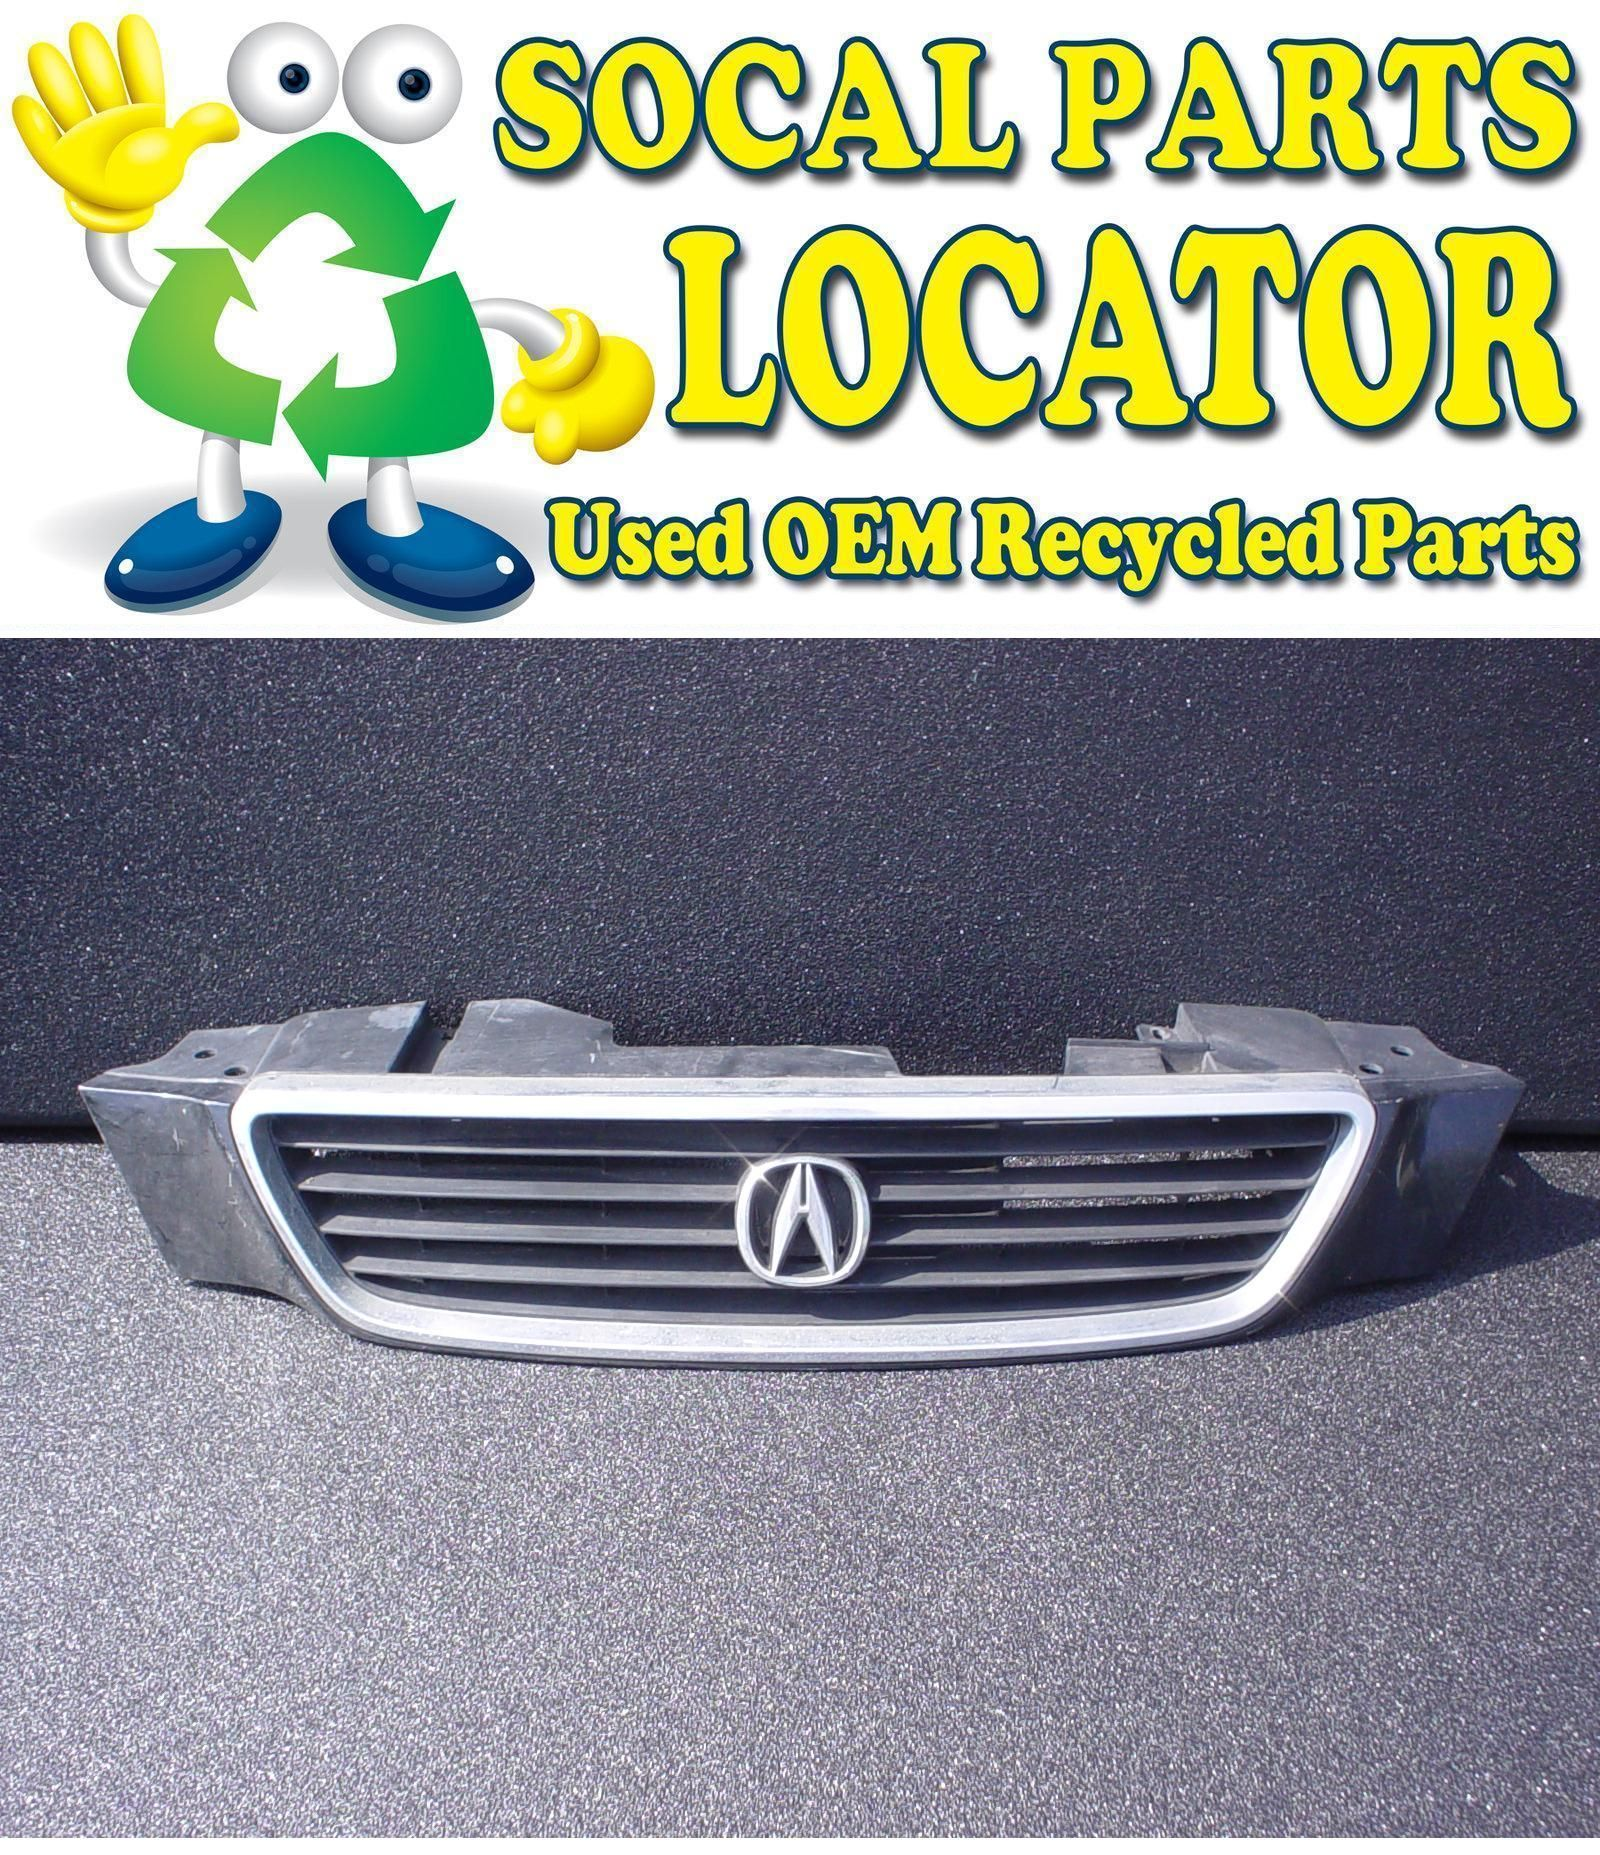 ACURA TL 3.2 GRILLE Grill USED OEM 96 97 98 So Cal Parts